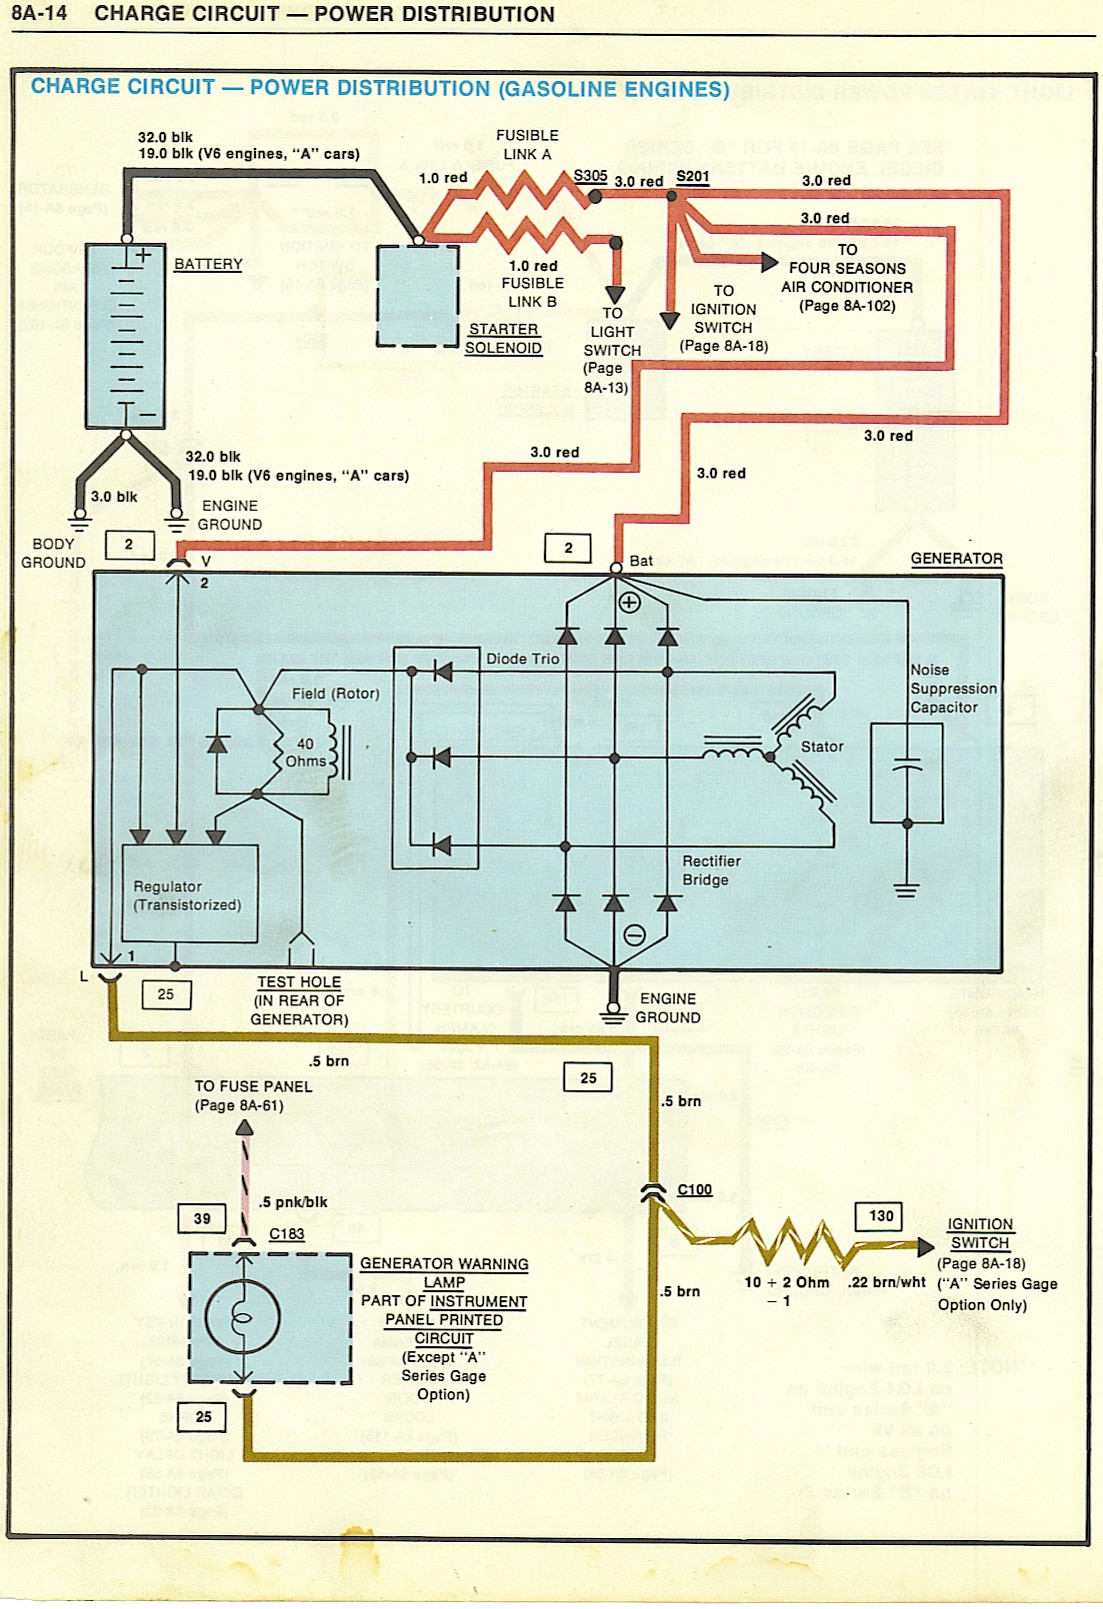 hight resolution of 1987 buick century wiring diagram wiring diagram used 87 buick century wiring diagram